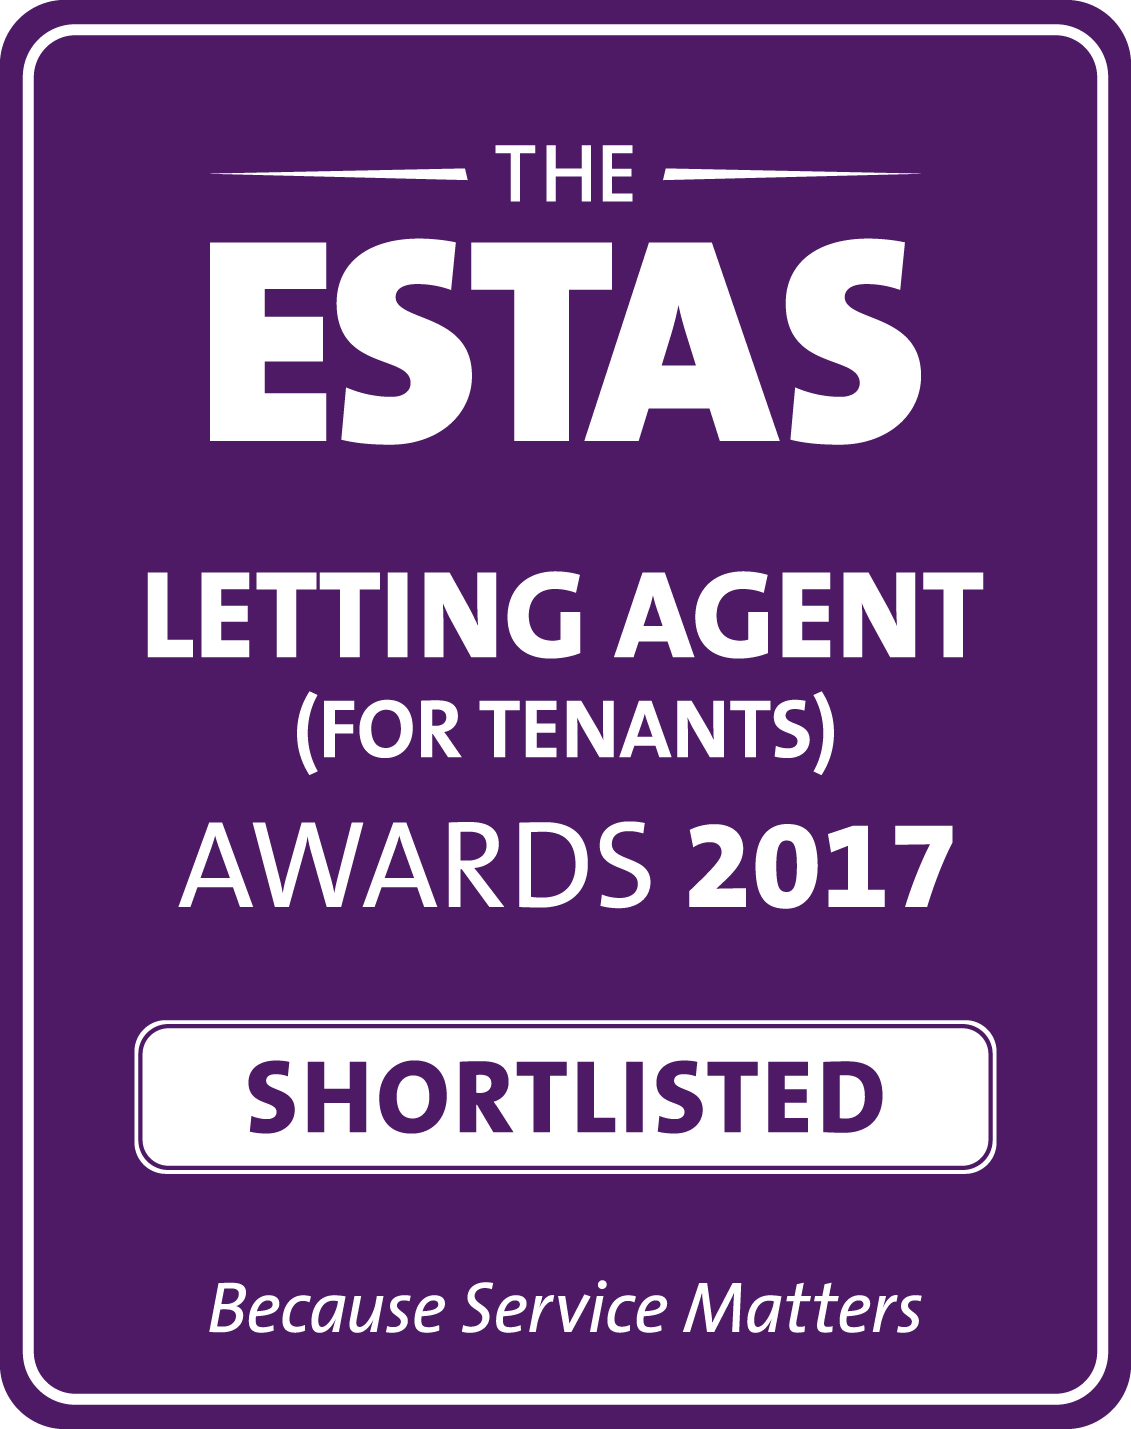 ESTAS17-BEST-LA4Tenant-SHORTLISTED.png